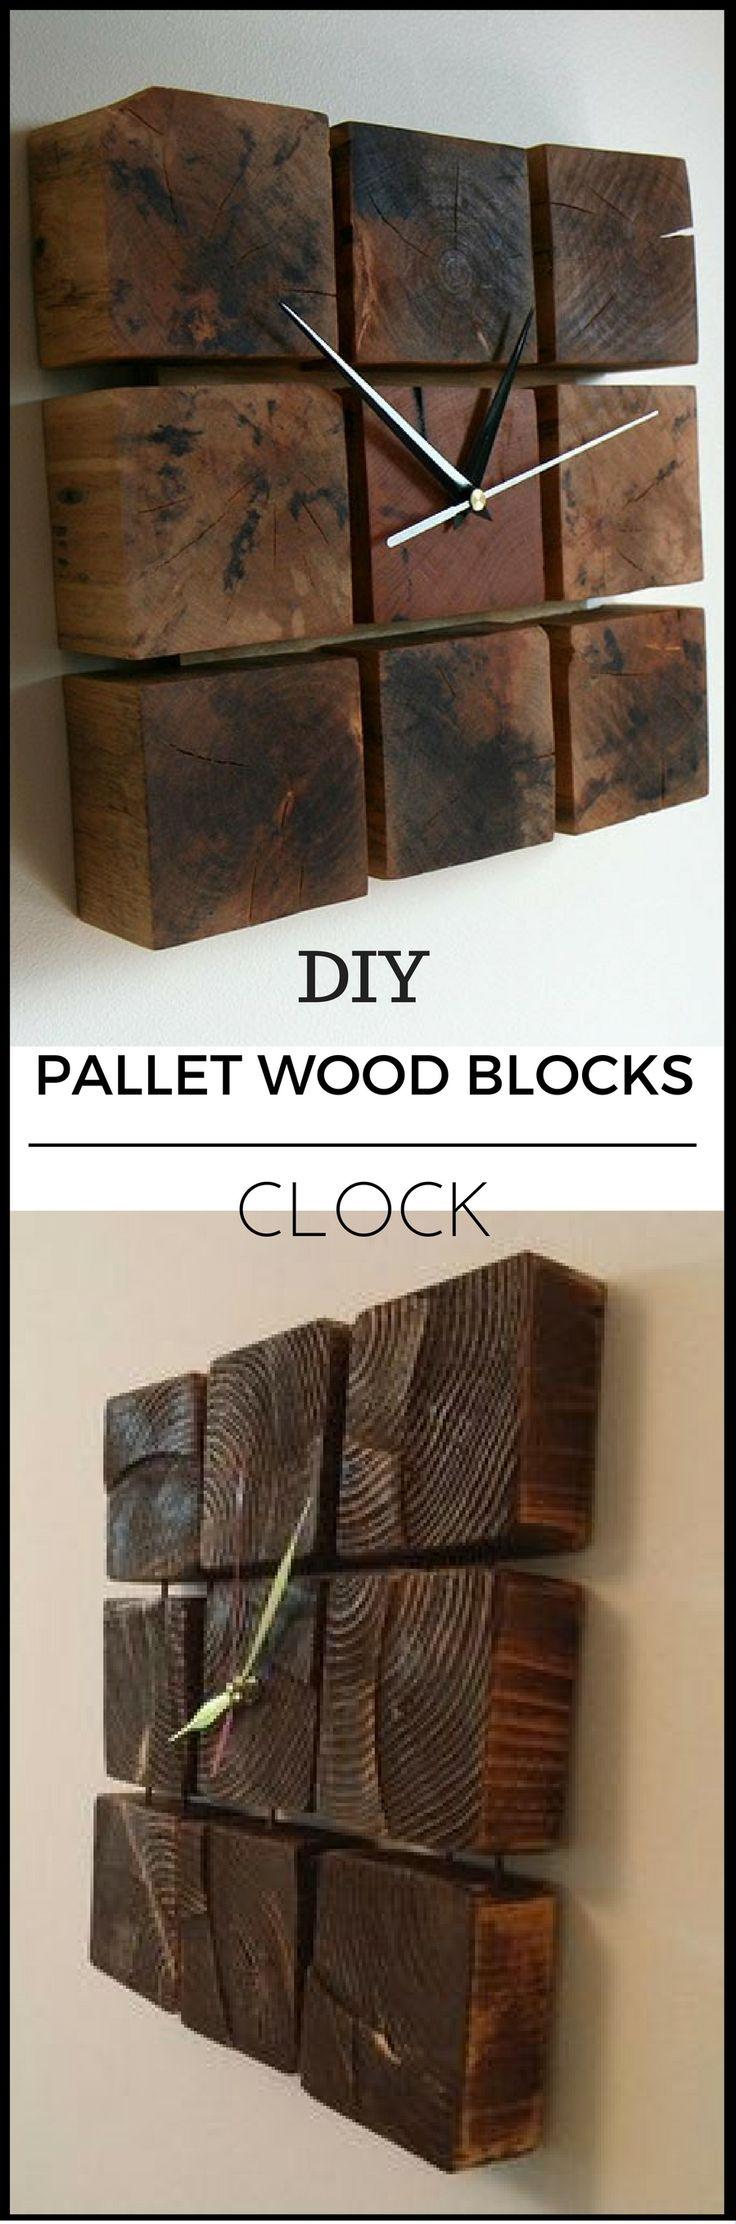 The Best DIY Wood and Pallet Ideas: You Need to Know the 7 Bs of Building Bookcases